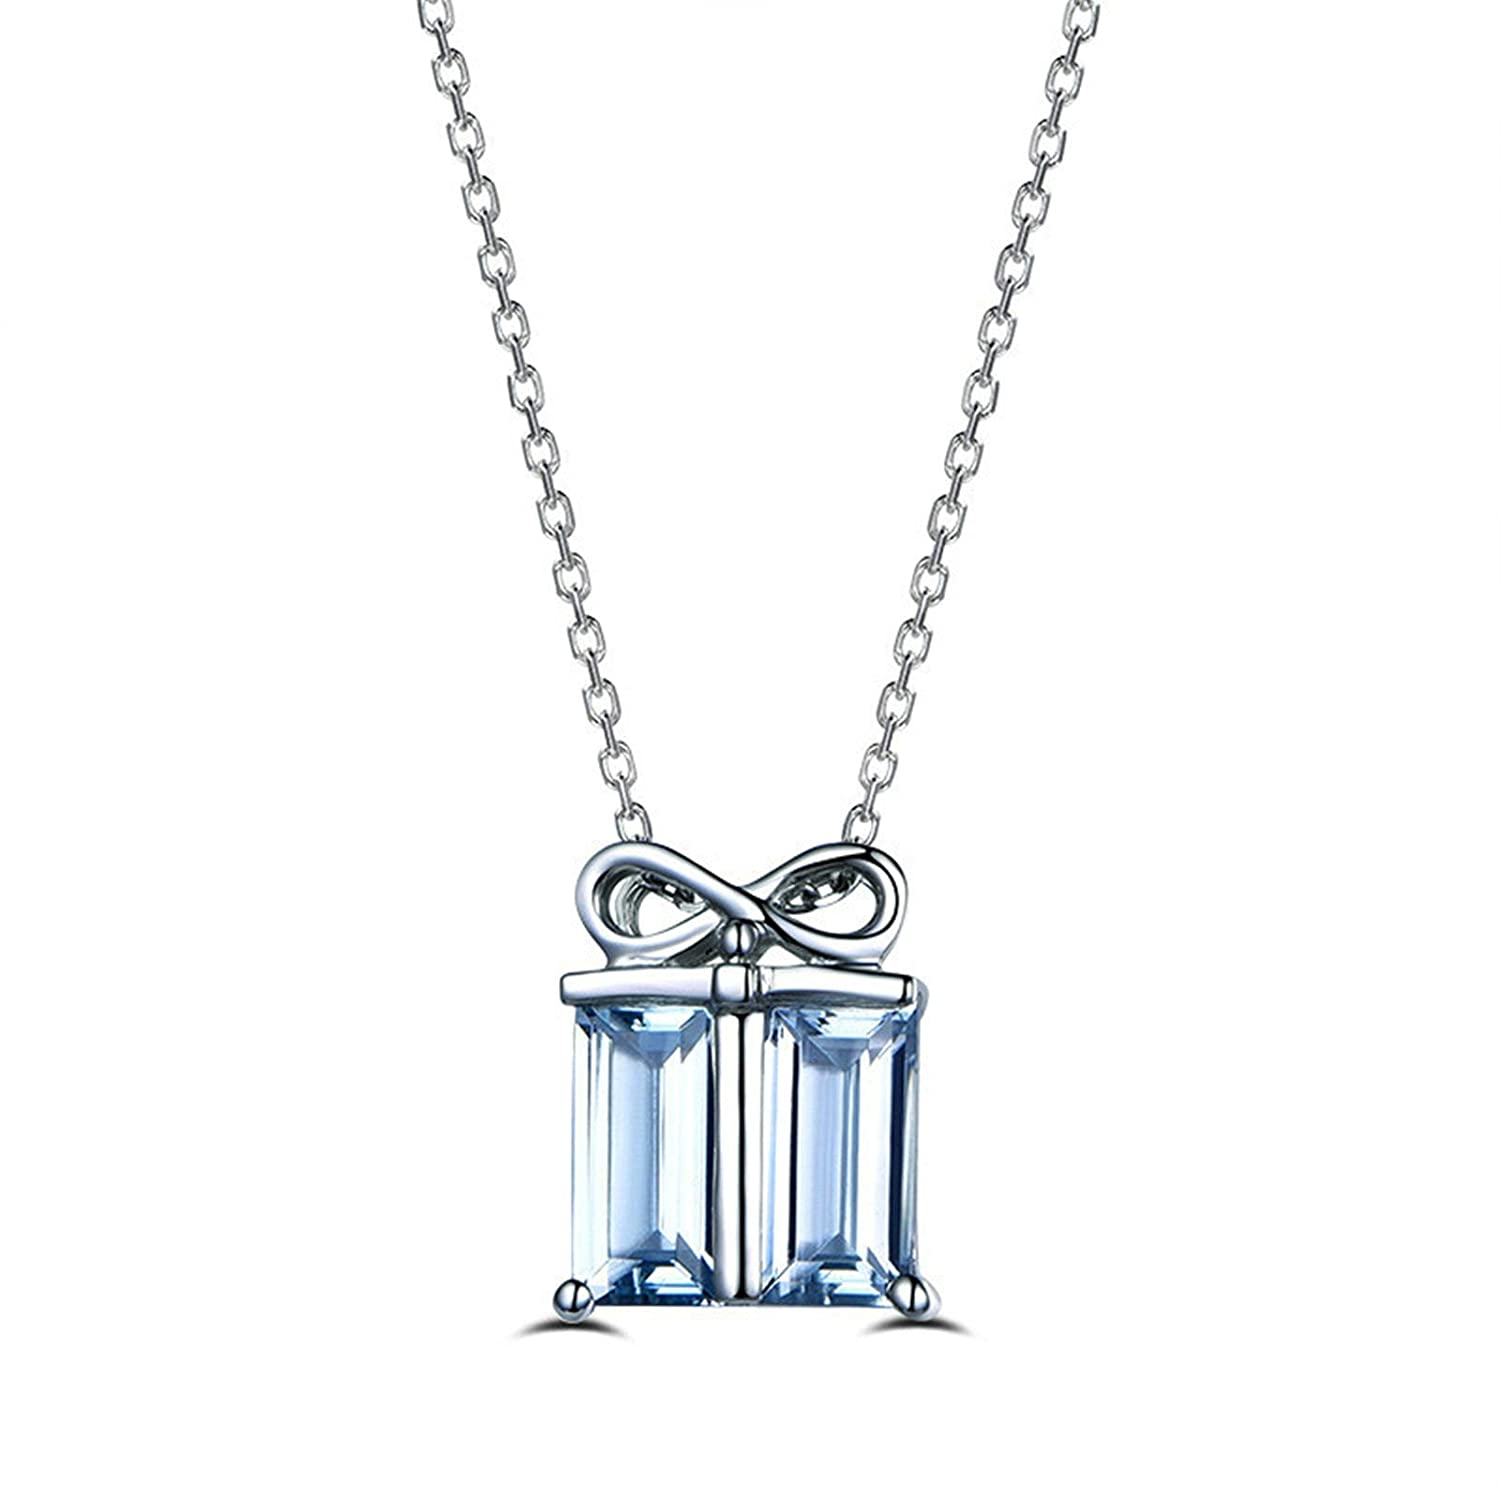 Aooaz Jewelry Material Silver Chain Necklace Gift Box Shaped Pendant Necklace Blue